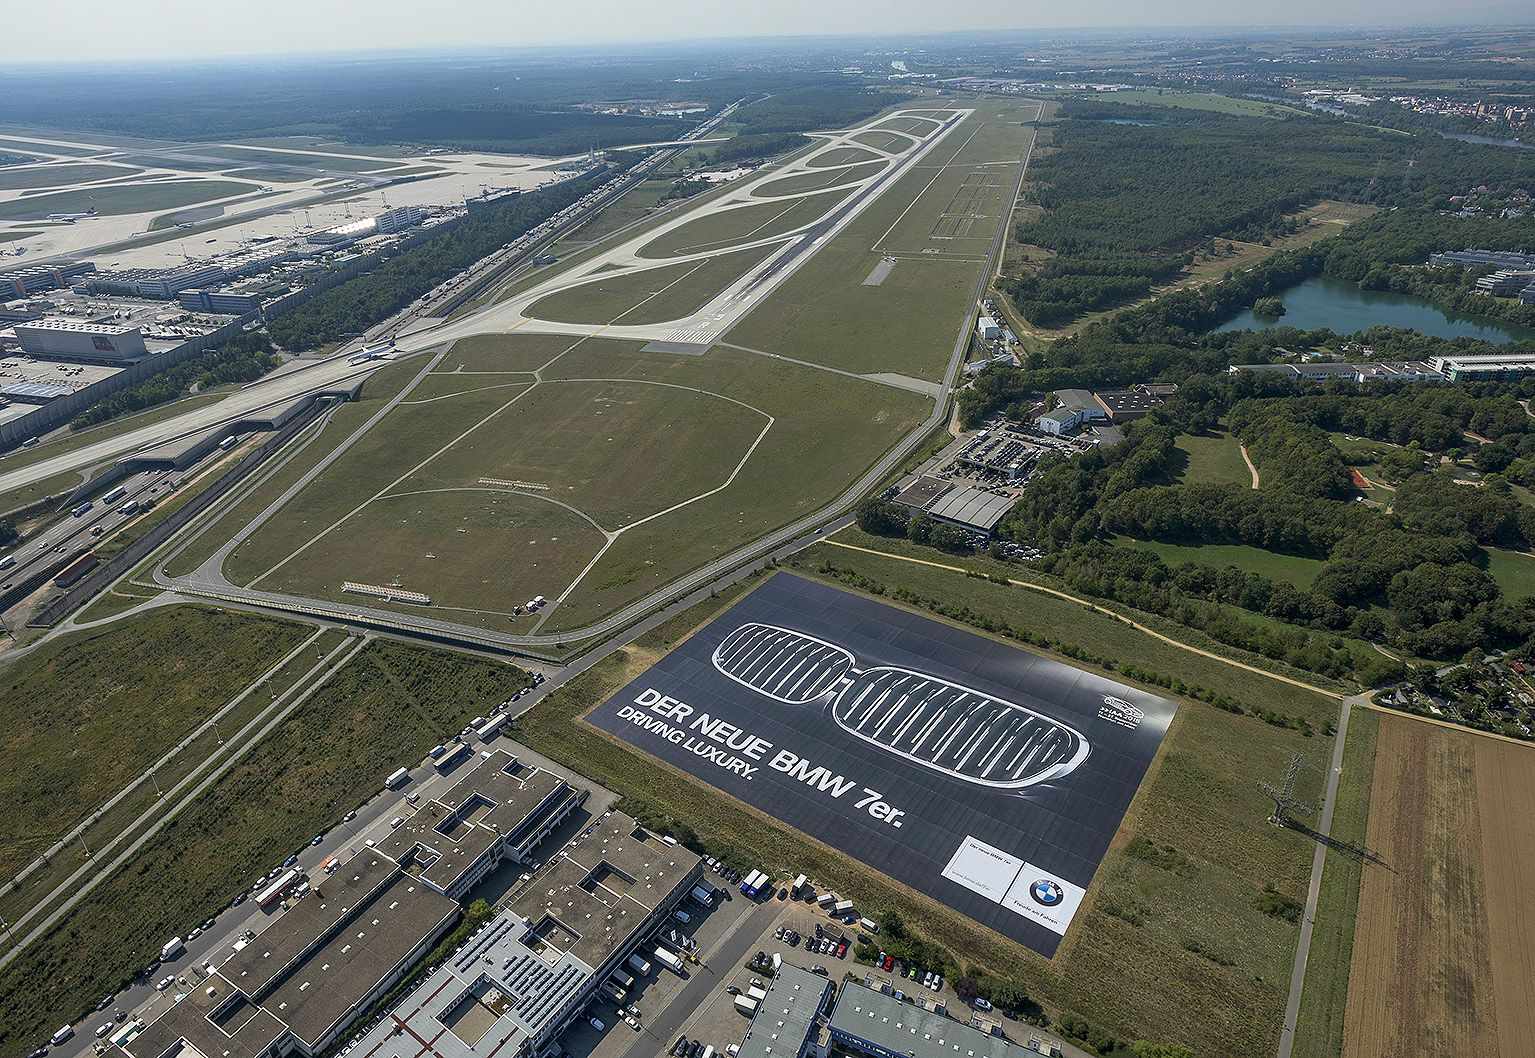 BMW shows largest poster in the World next to Frankfurt Airport (FRA)